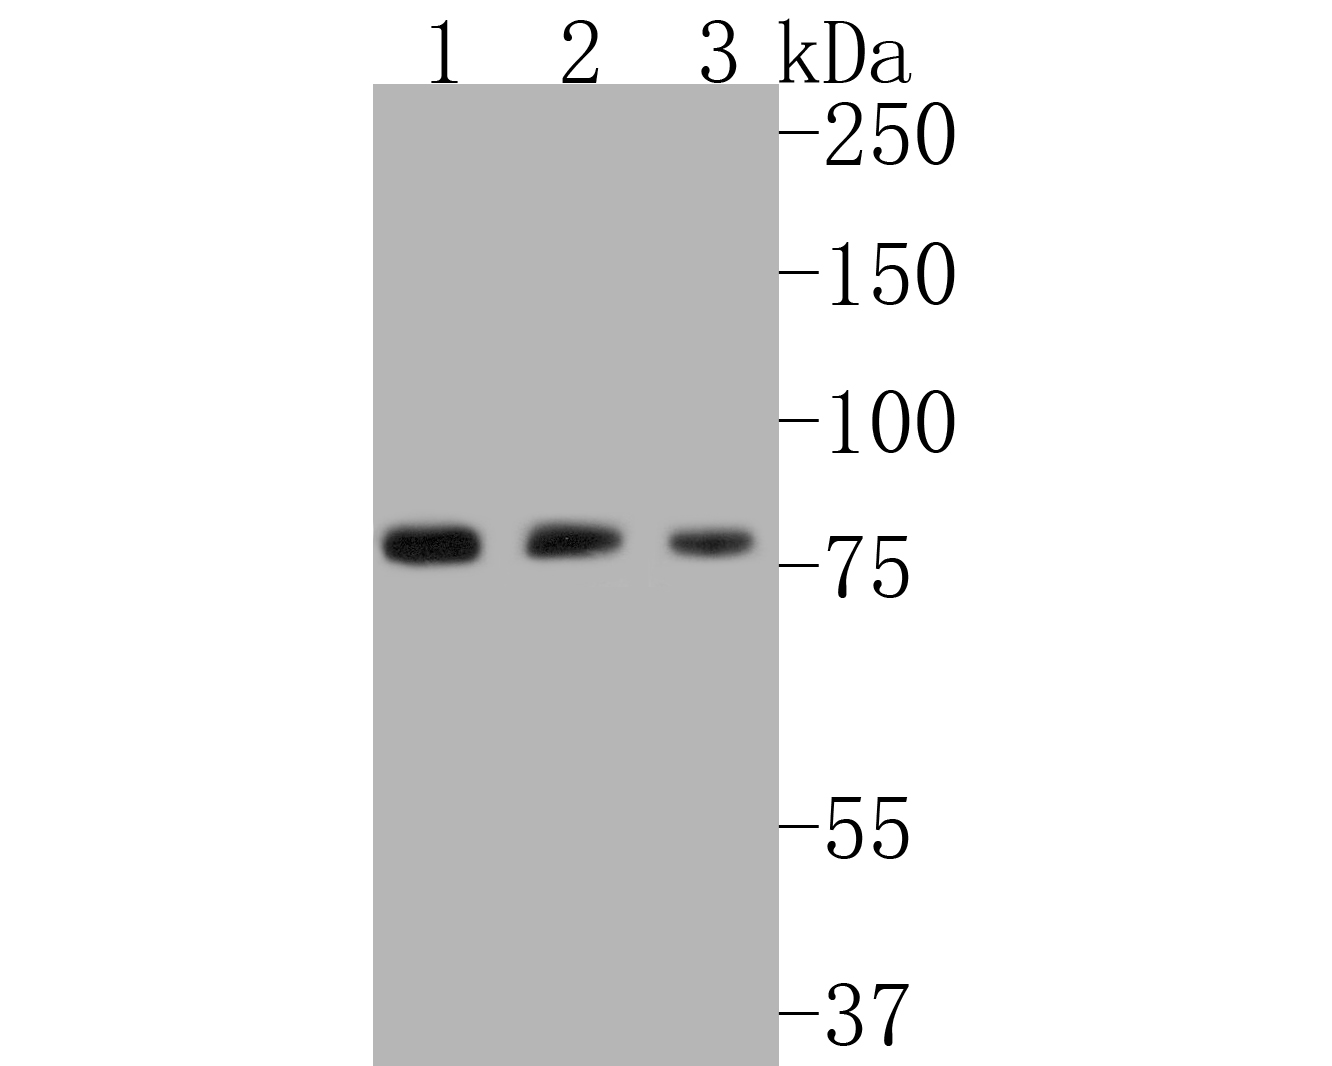 Western blot analysis of Radixin on different lysates. Proteins were transferred to a PVDF membrane and blocked with 5% BSA in PBS for 1 hour at room temperature. The primary antibody (ET1610-41, 1/500) was used in 5% BSA at room temperature for 2 hours. Goat Anti-Rabbit IgG - HRP Secondary Antibody (HA1001) at 1:5,000 dilution was used for 1 hour at room temperature.<br />  Positive control: <br />  Lane 1: Hela cell lysate<br />  Lane 2: HepG2 cell lysate<br />  Lane 3: A431 cell lysate